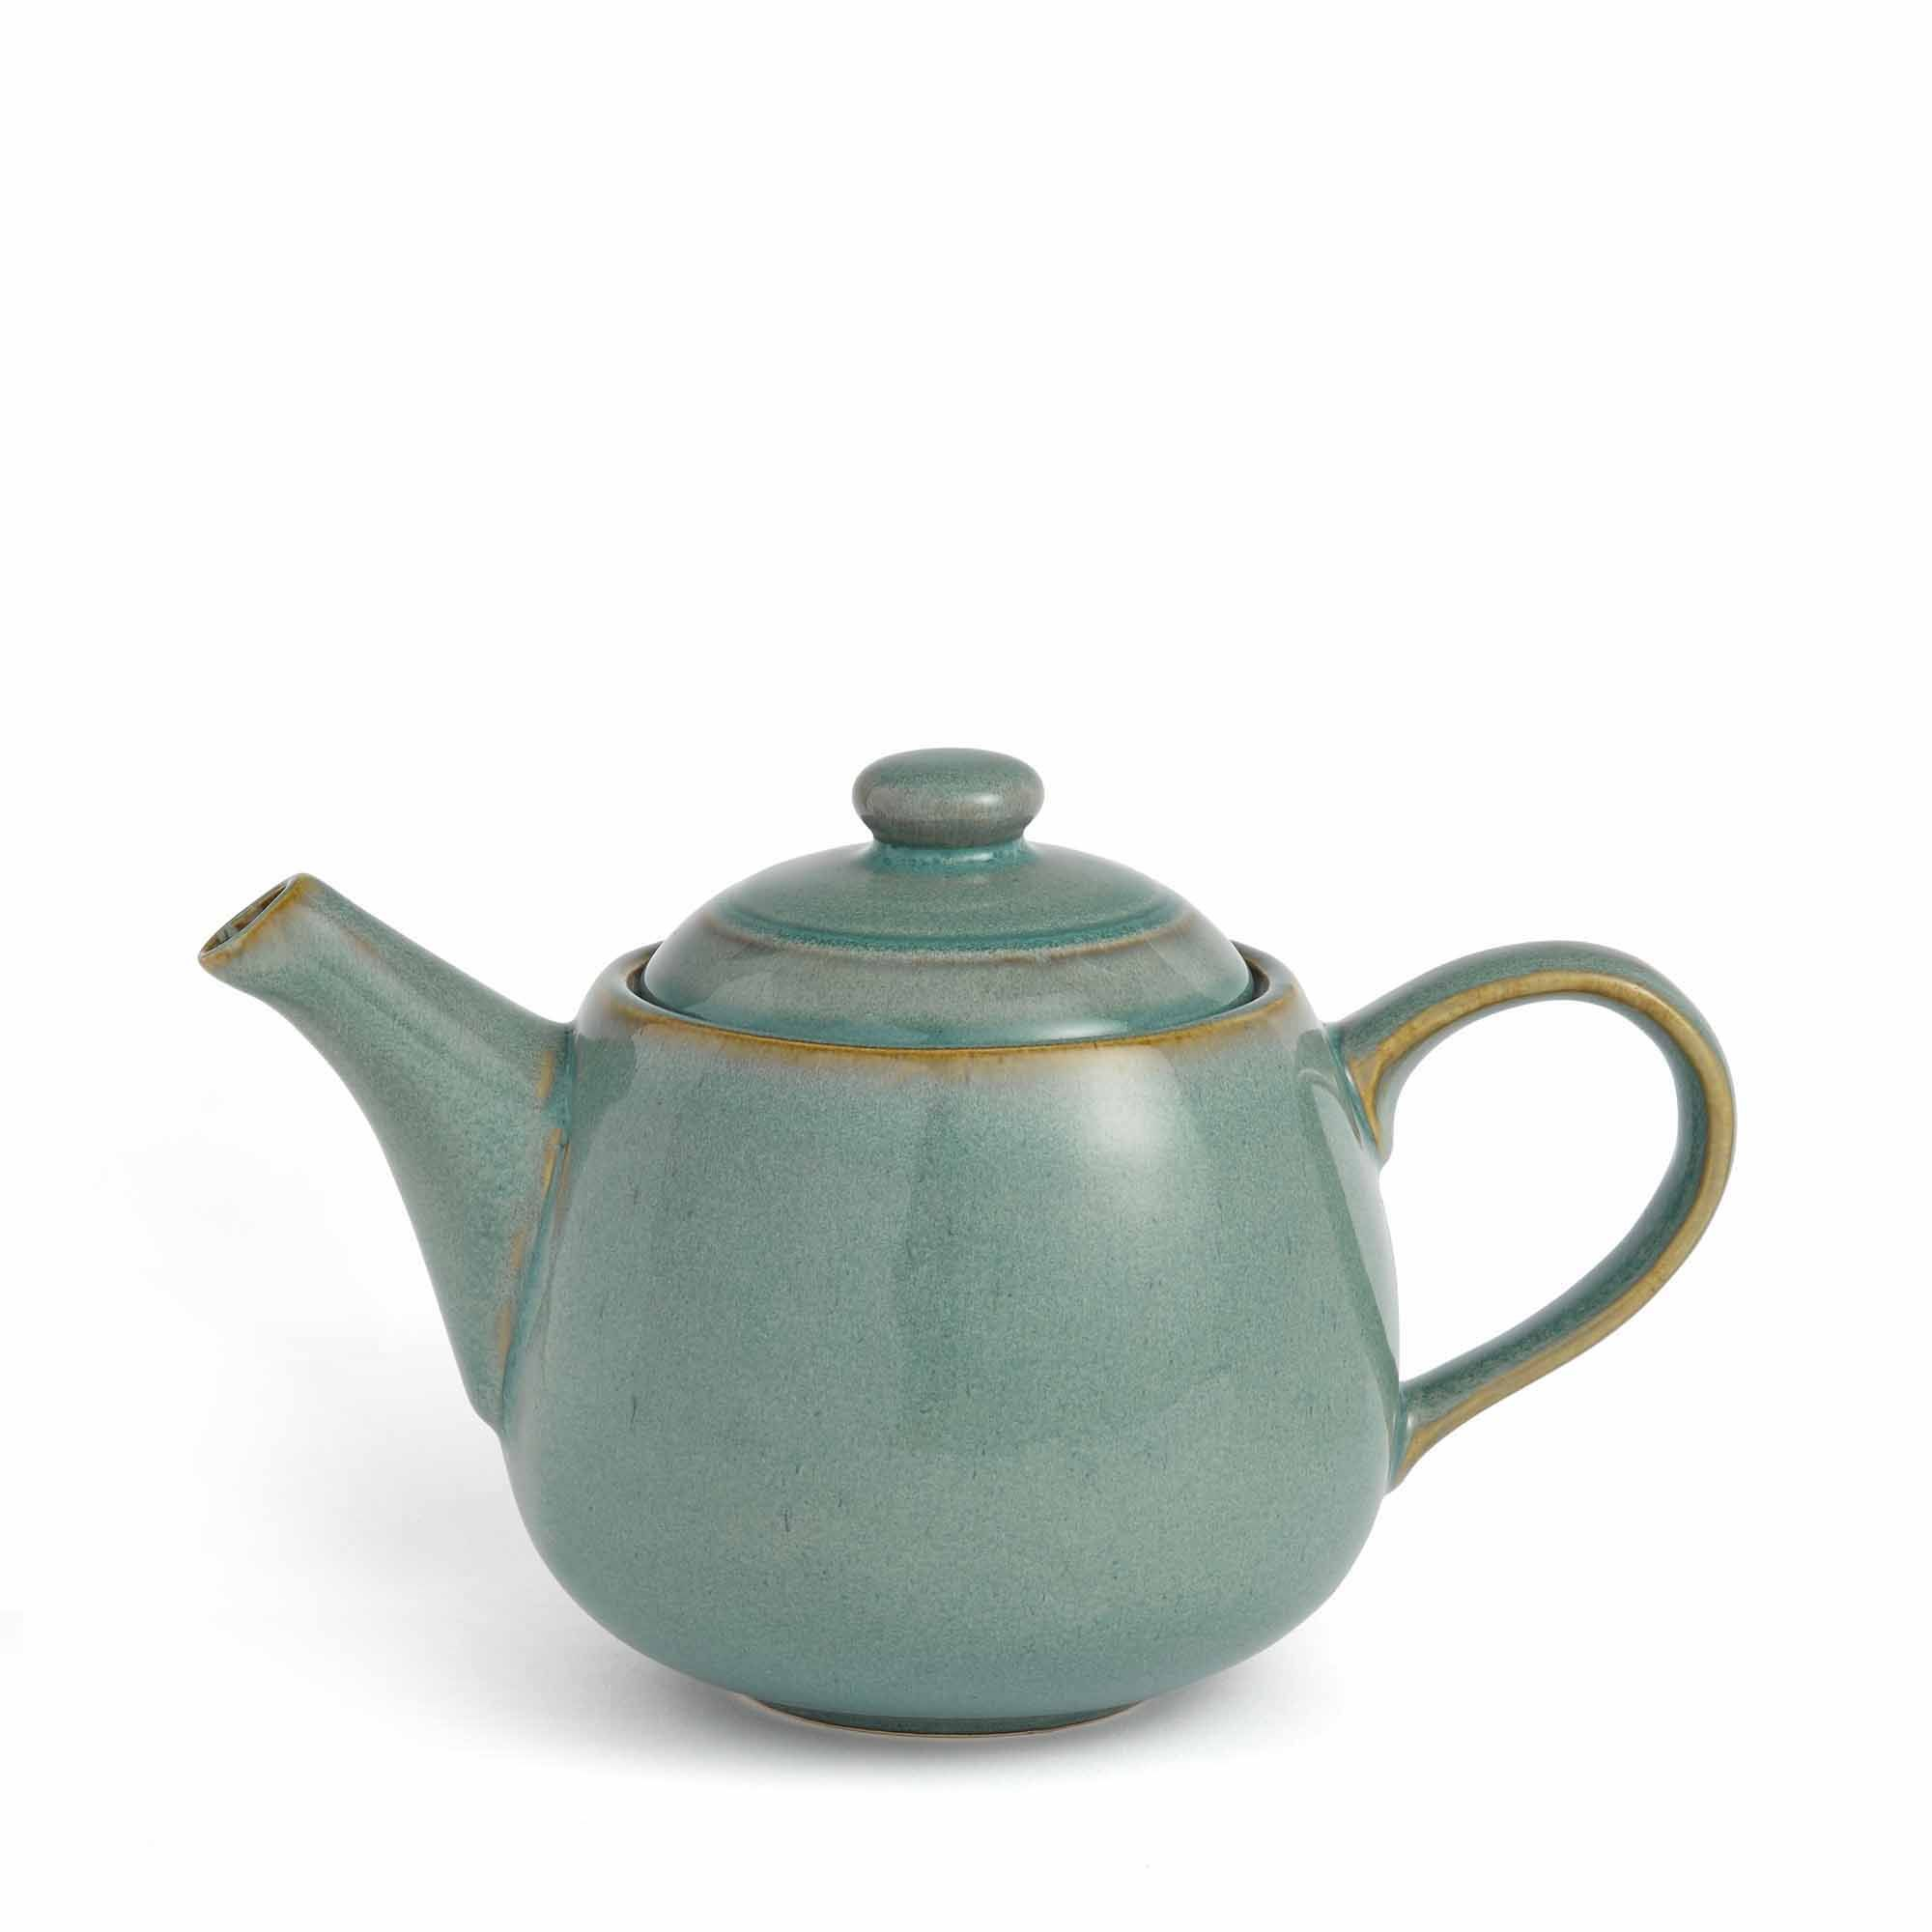 Shop Country House Teapot, Large from Soho Home today. Discover design-led, unique and inspirational pieces found in Soho Houses worldwide.